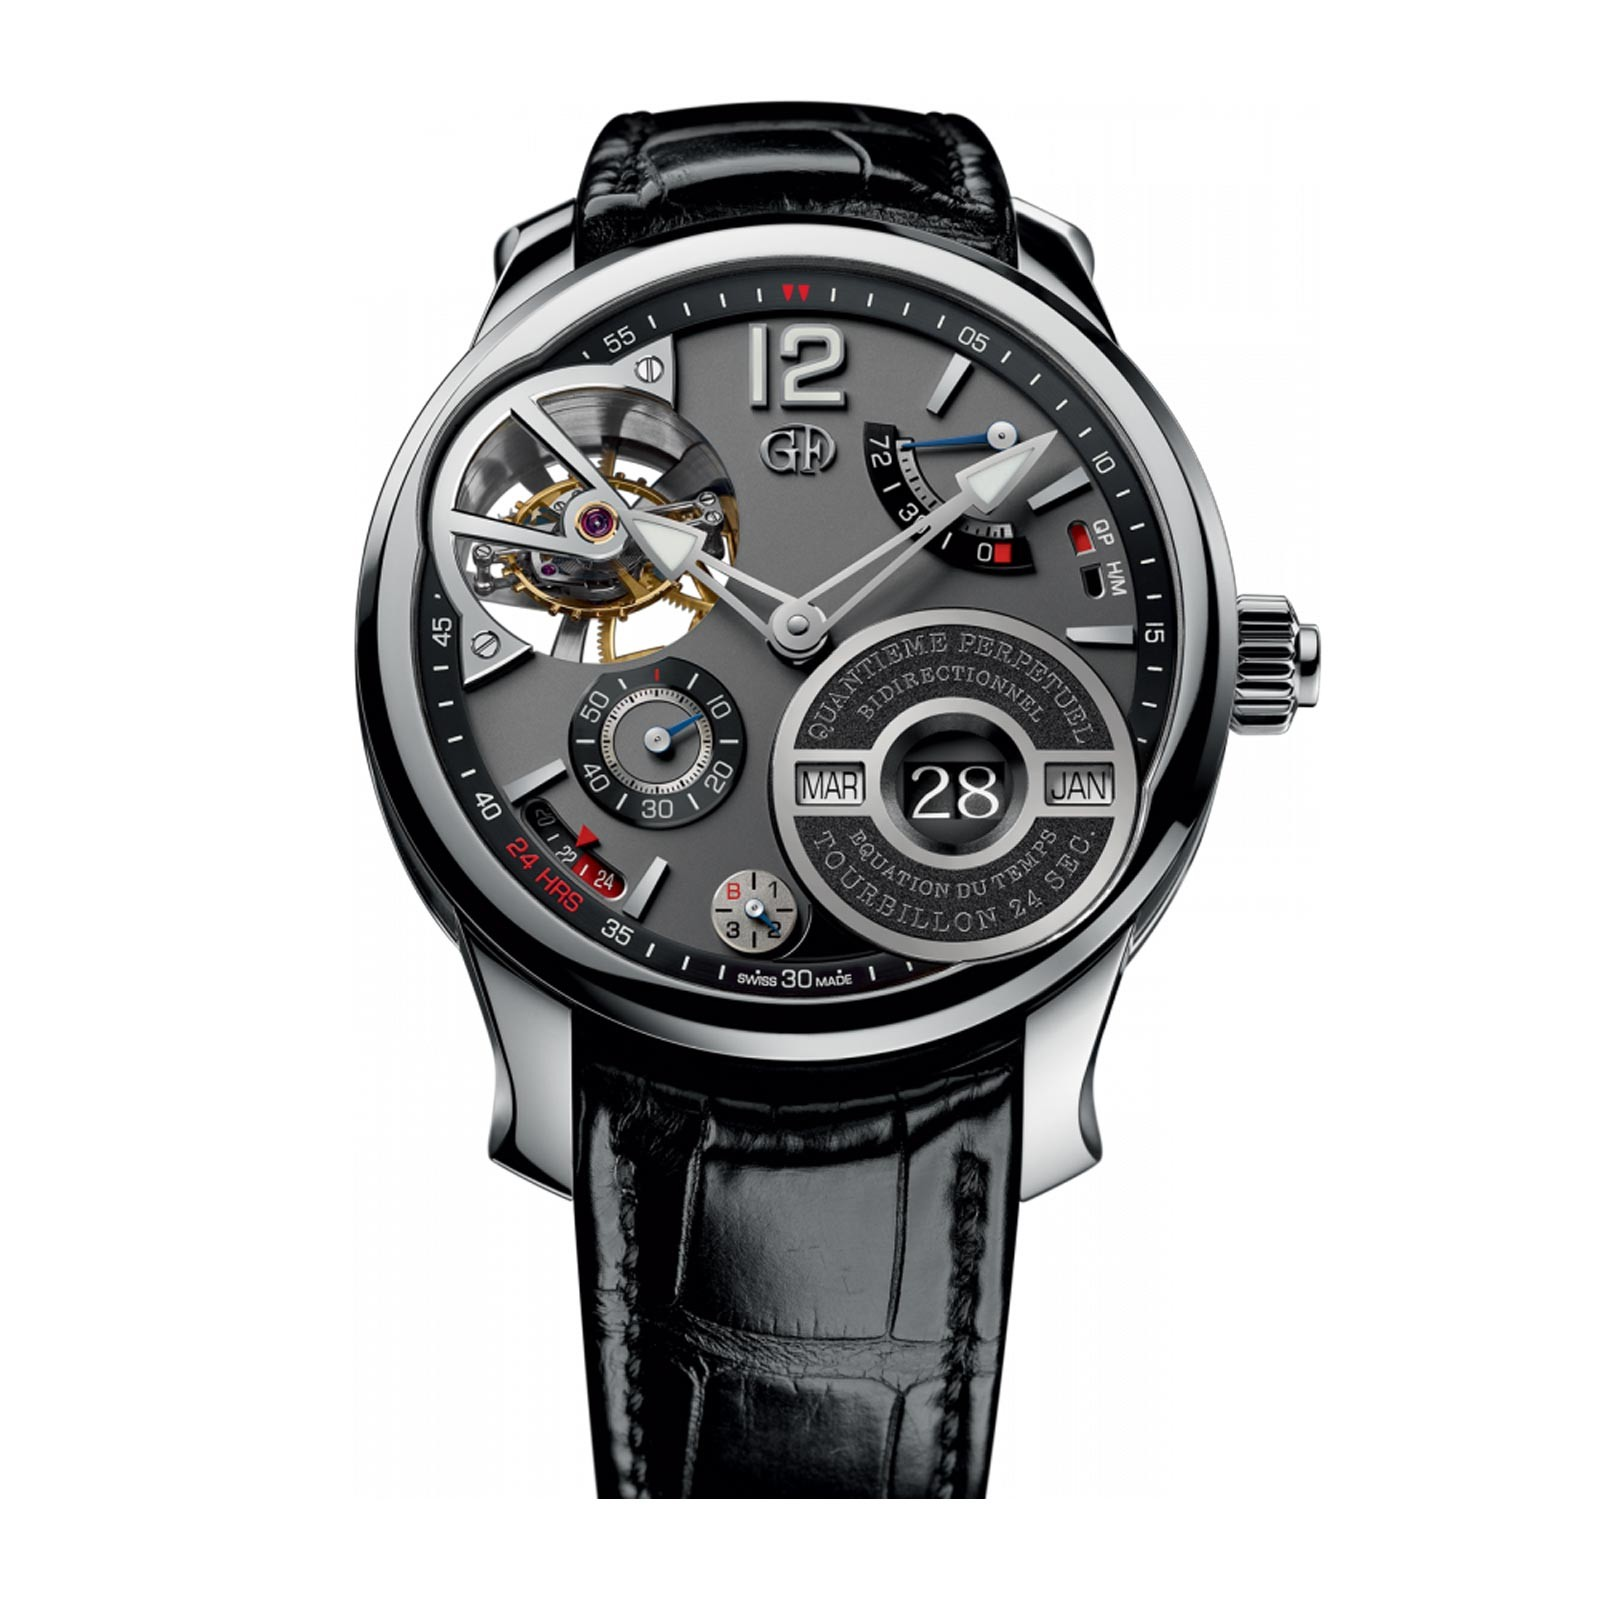 greubel-forsey-quantieme-perpetuel-a-equation-watch-face-view